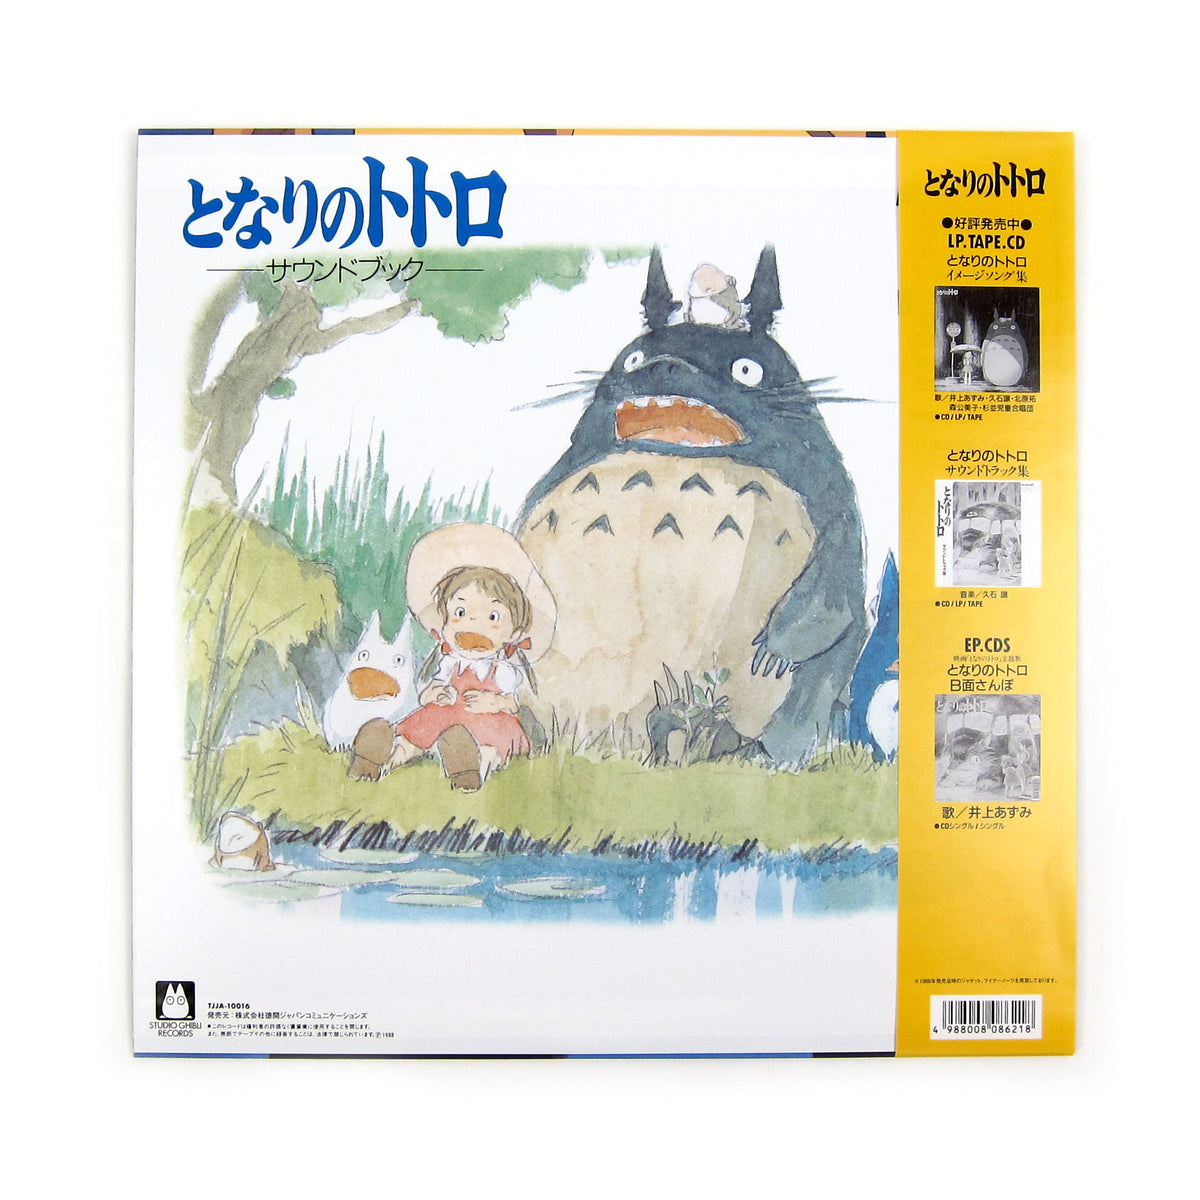 Joe Hisaishi: My Neighbor Totoro - Sound Book Vinyl LP